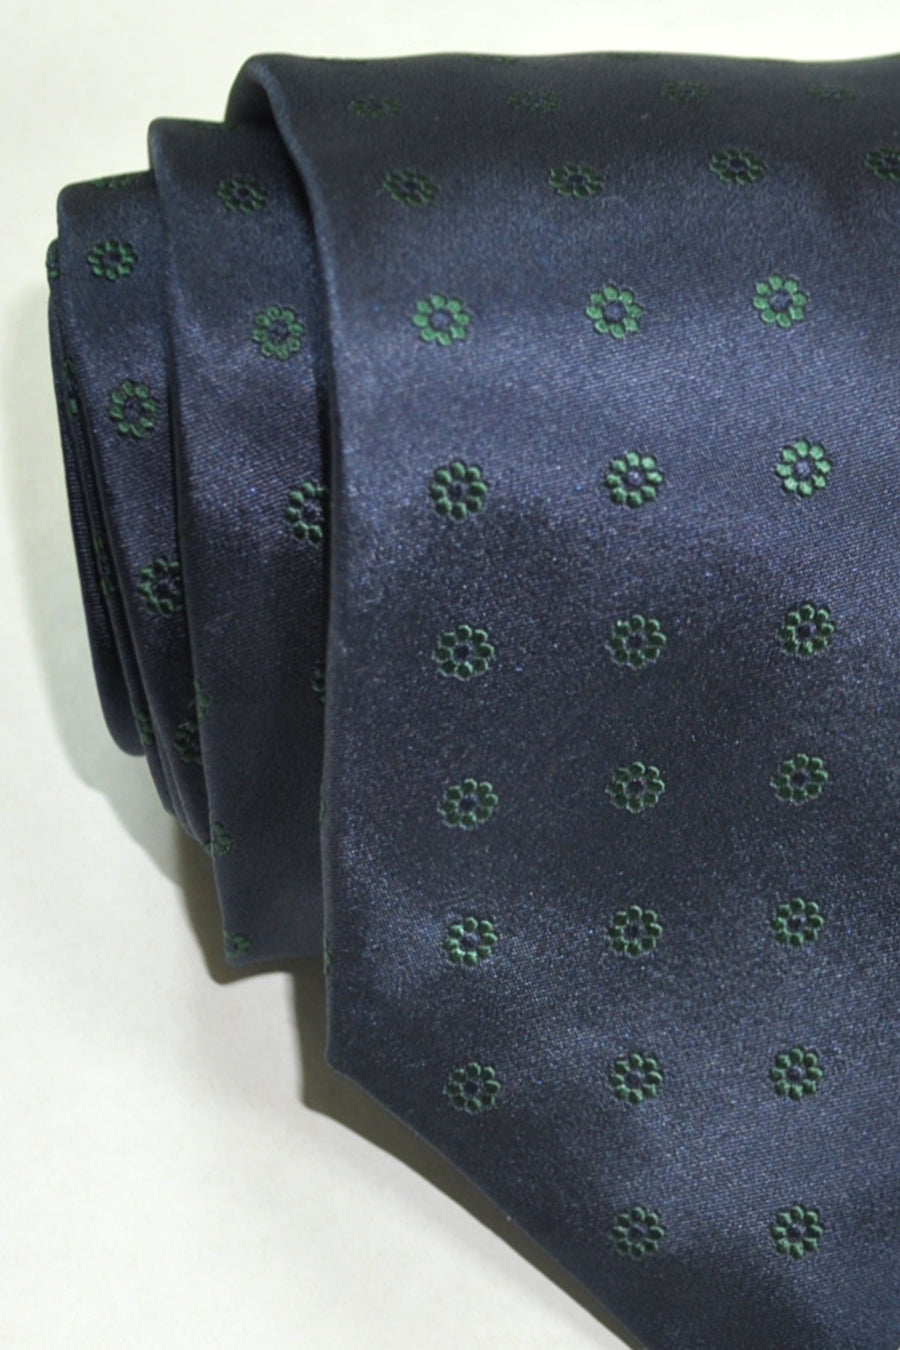 Barba Sevenfold Tie Dark Navy Green Floral